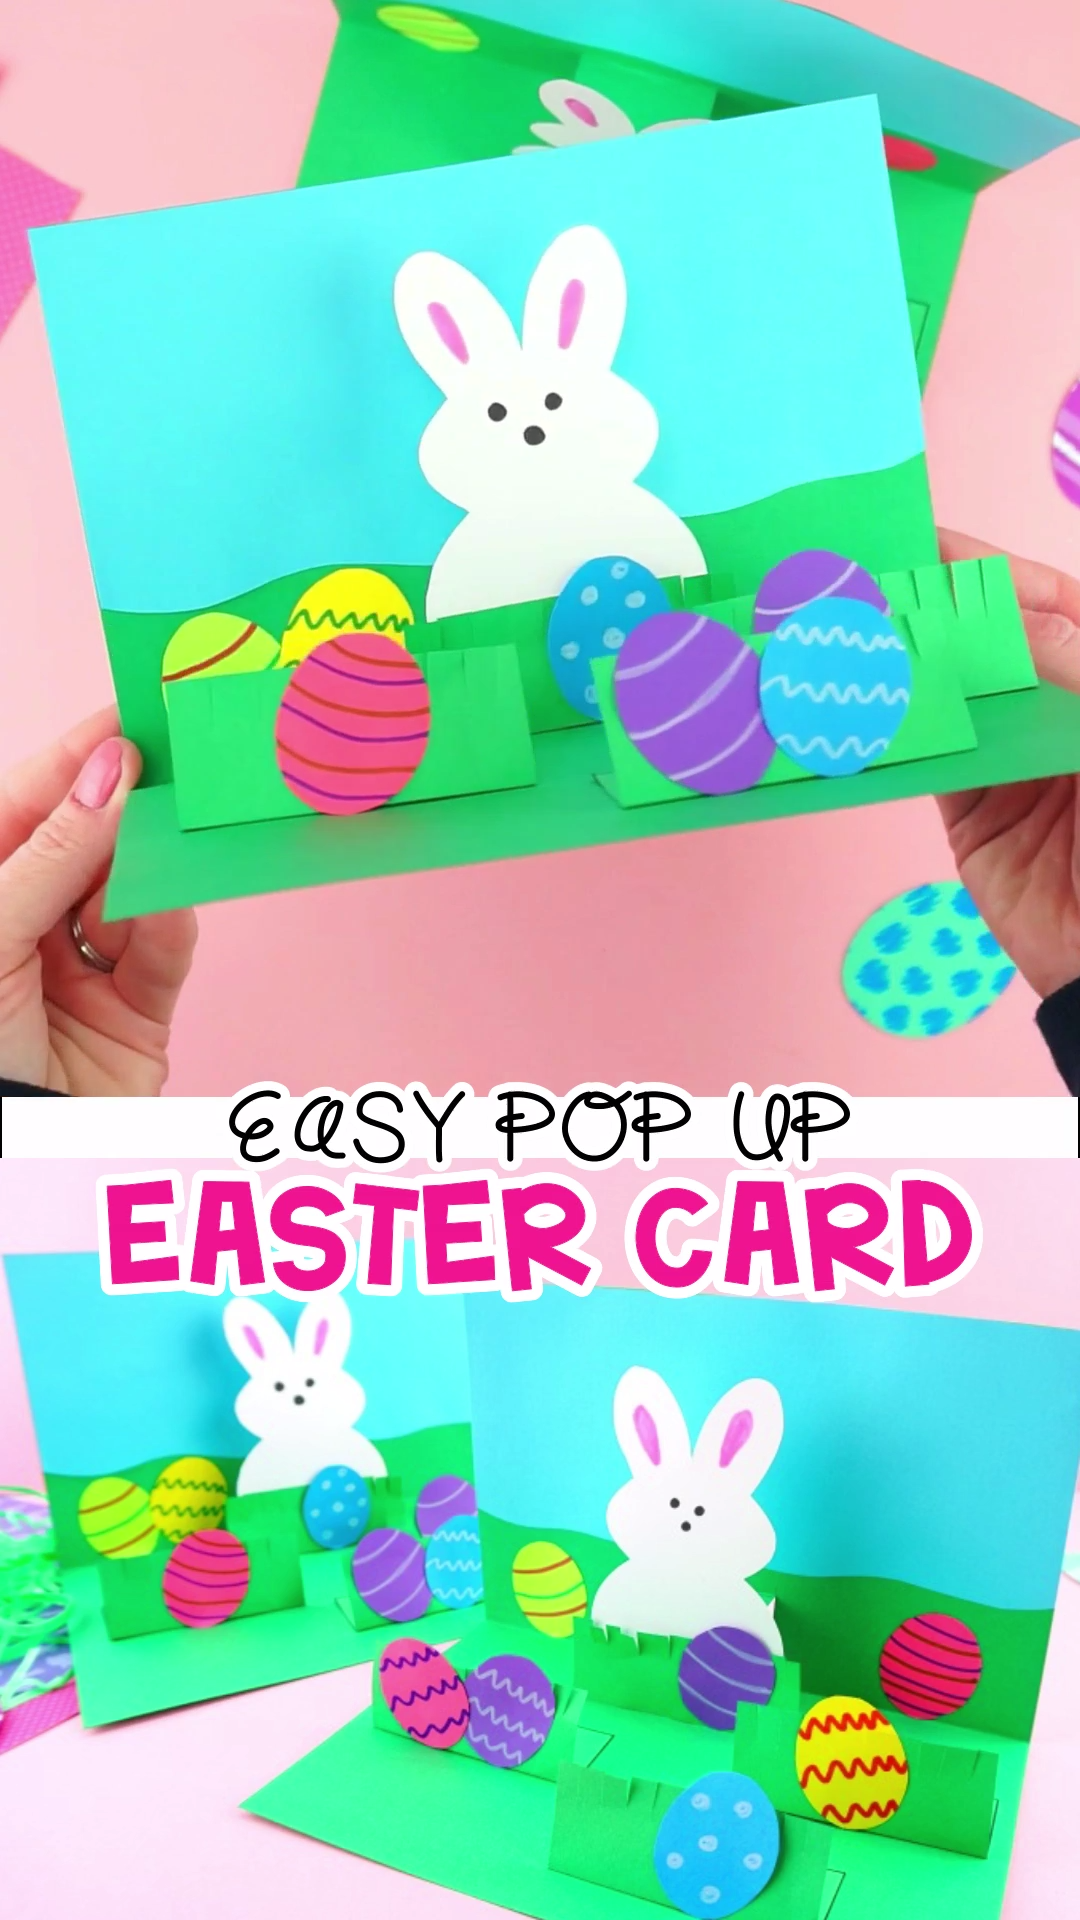 How to Make a Pop Up Easter Card -Easy Easter Craft for Kids#card #craft #easter #easy #kids #pop